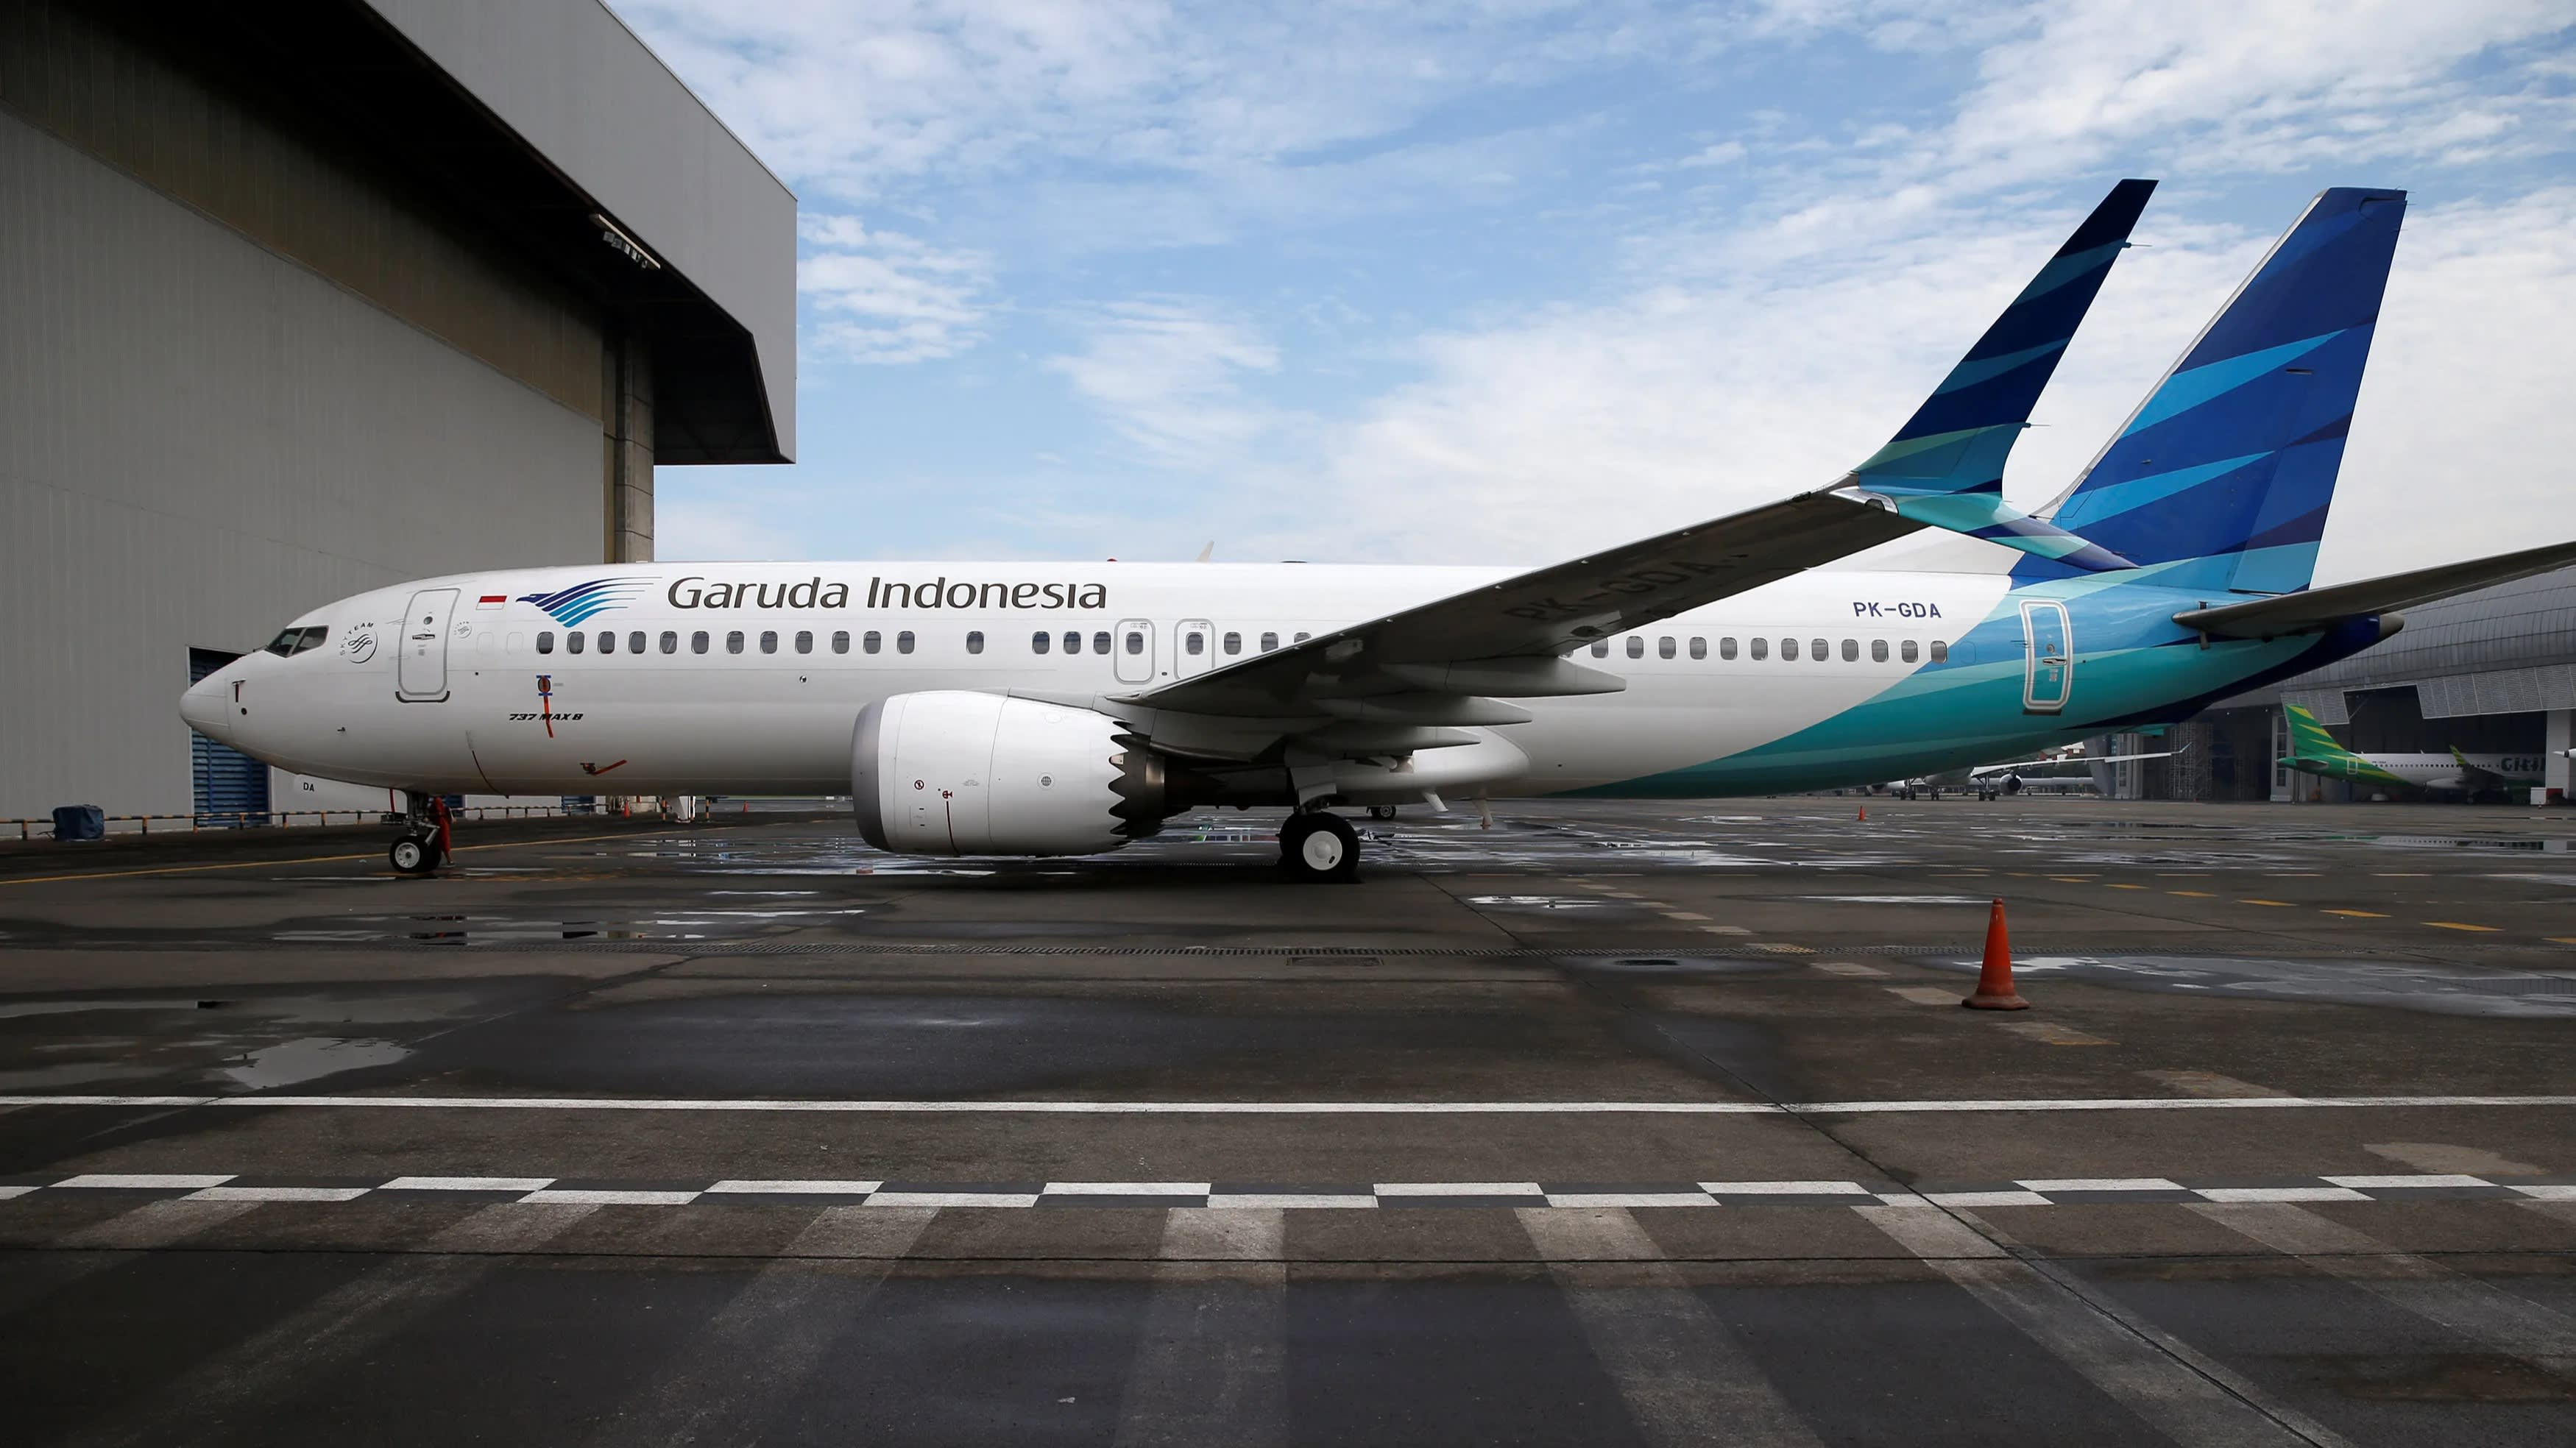 Garuda to switch 737 Max orders to other Boeing planes - Nikkei